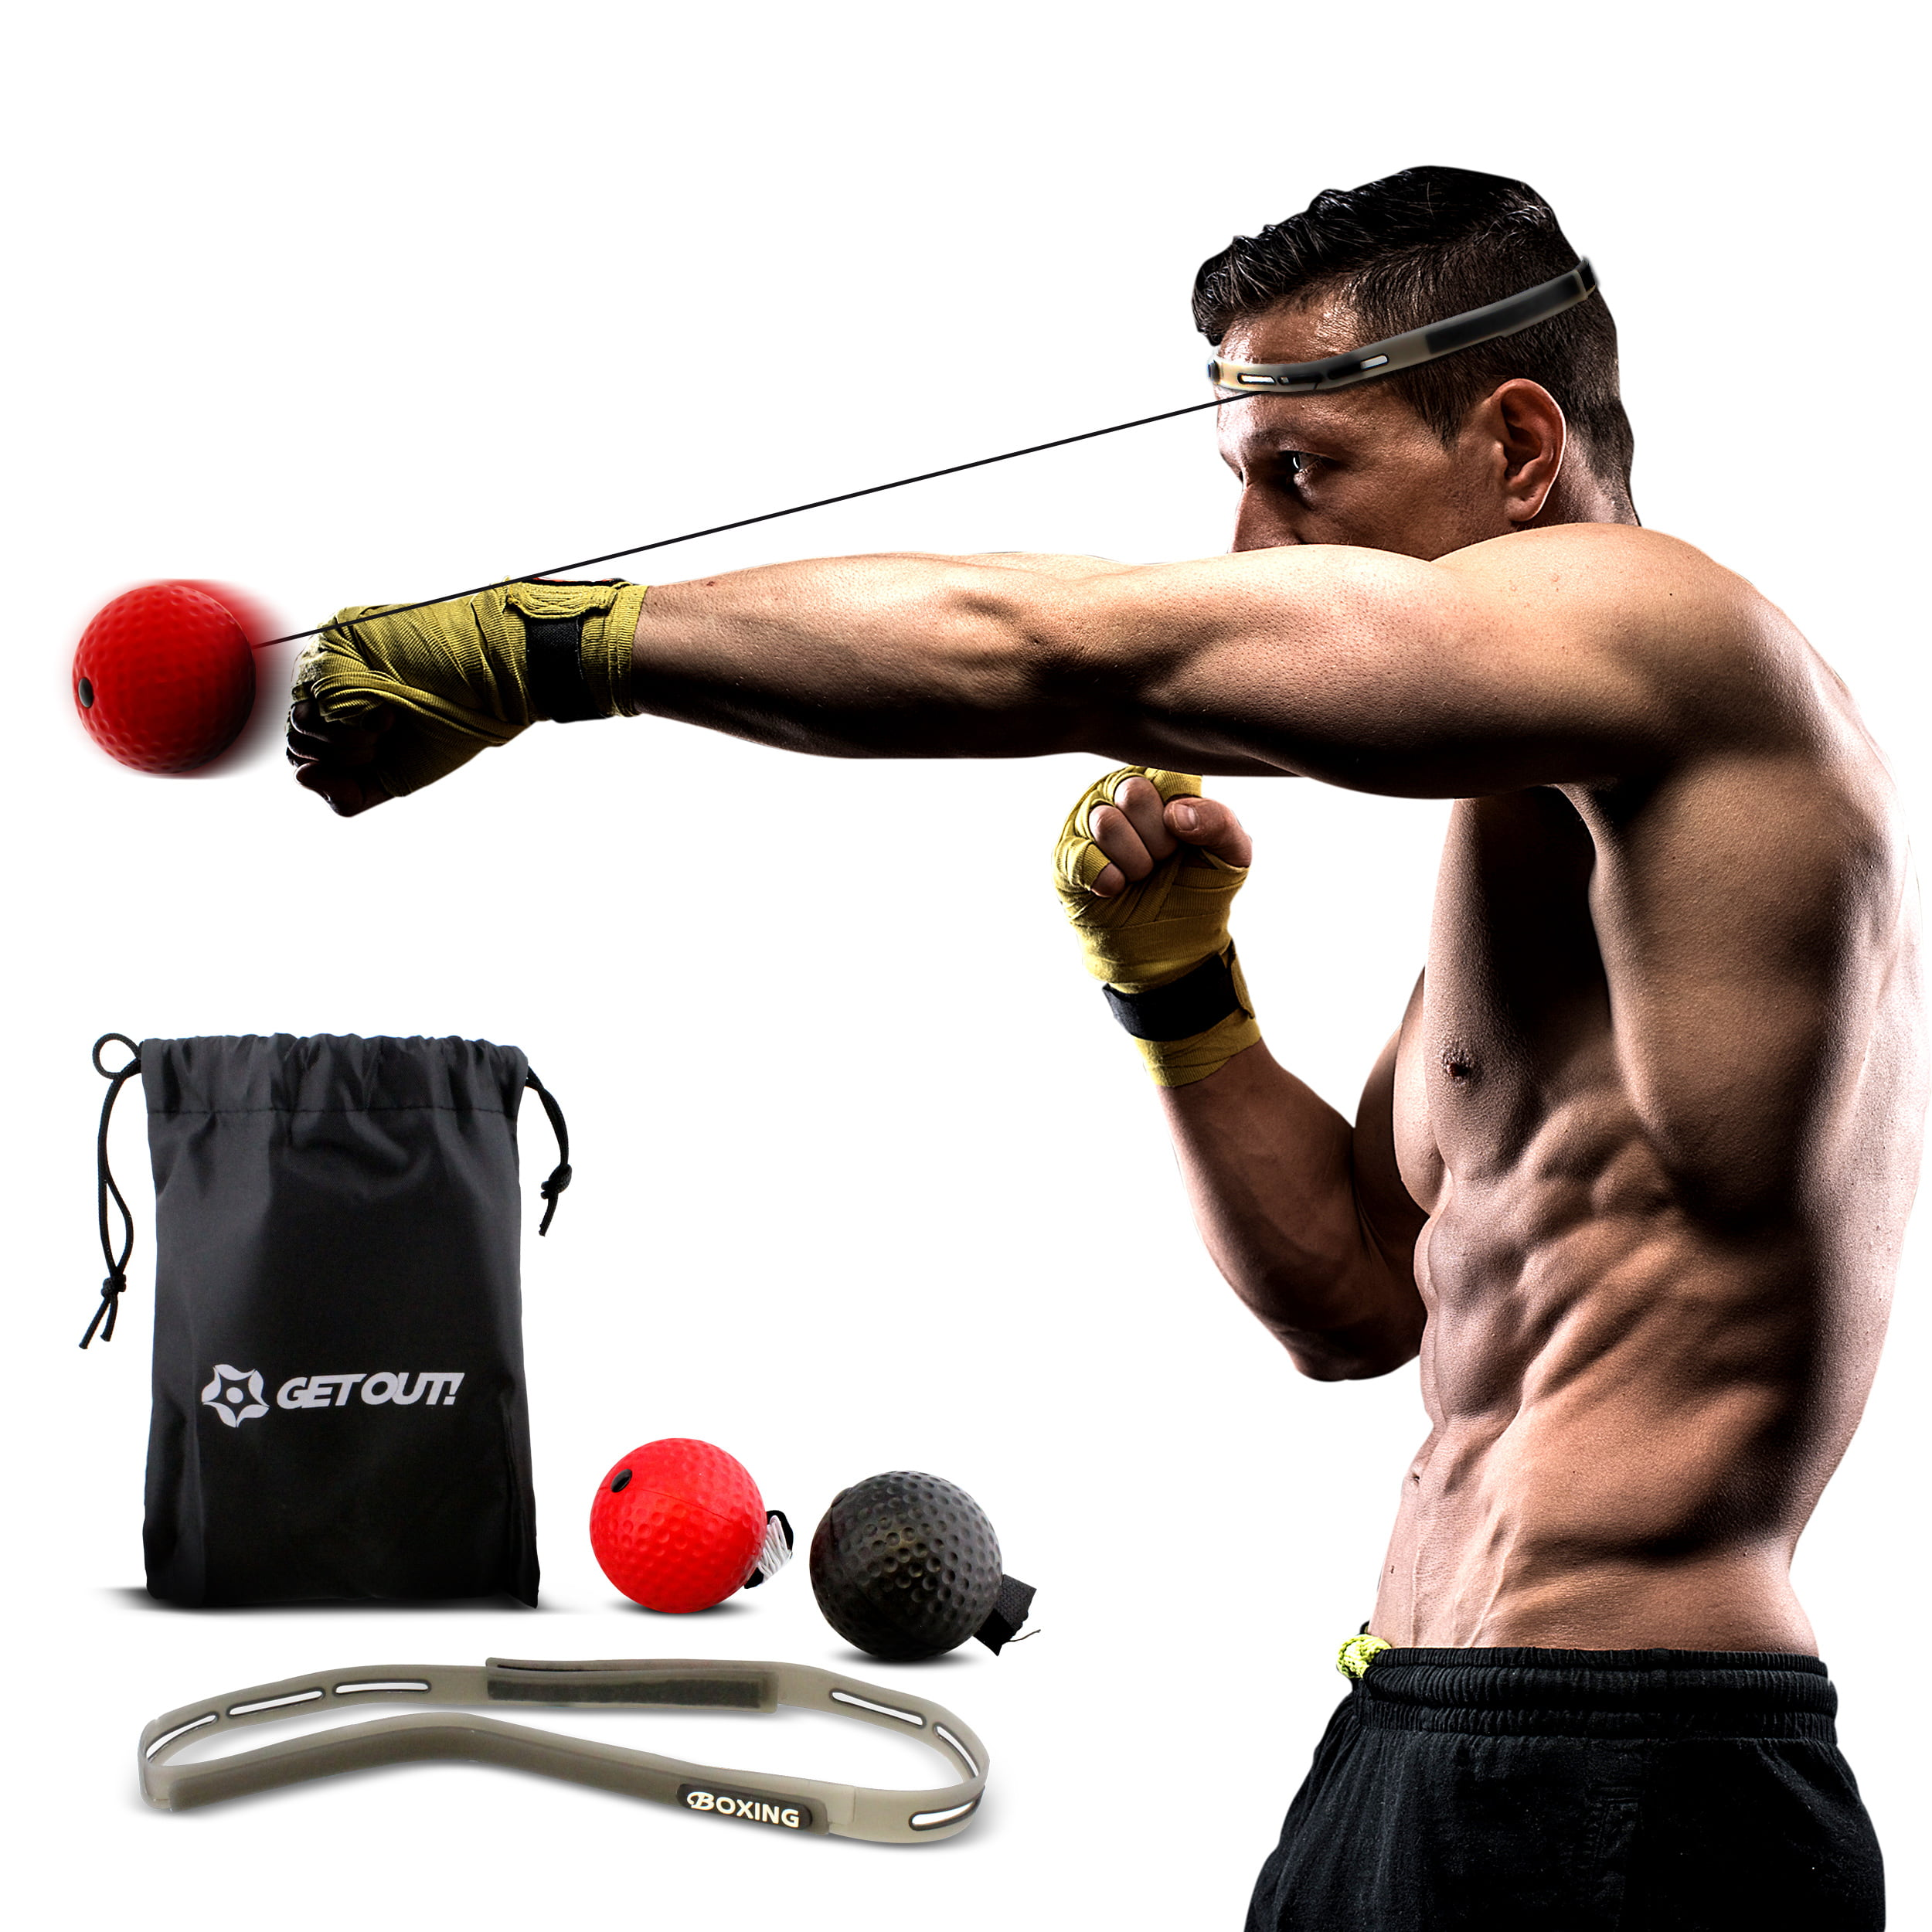 Boxing Training Gloves with Boxing Reflex Ball Sports Training Punch Fight React Head Ball UFC MMA Boxing Kickboxing Gloves for Adults Kids sisn Boxing Gym Equipment